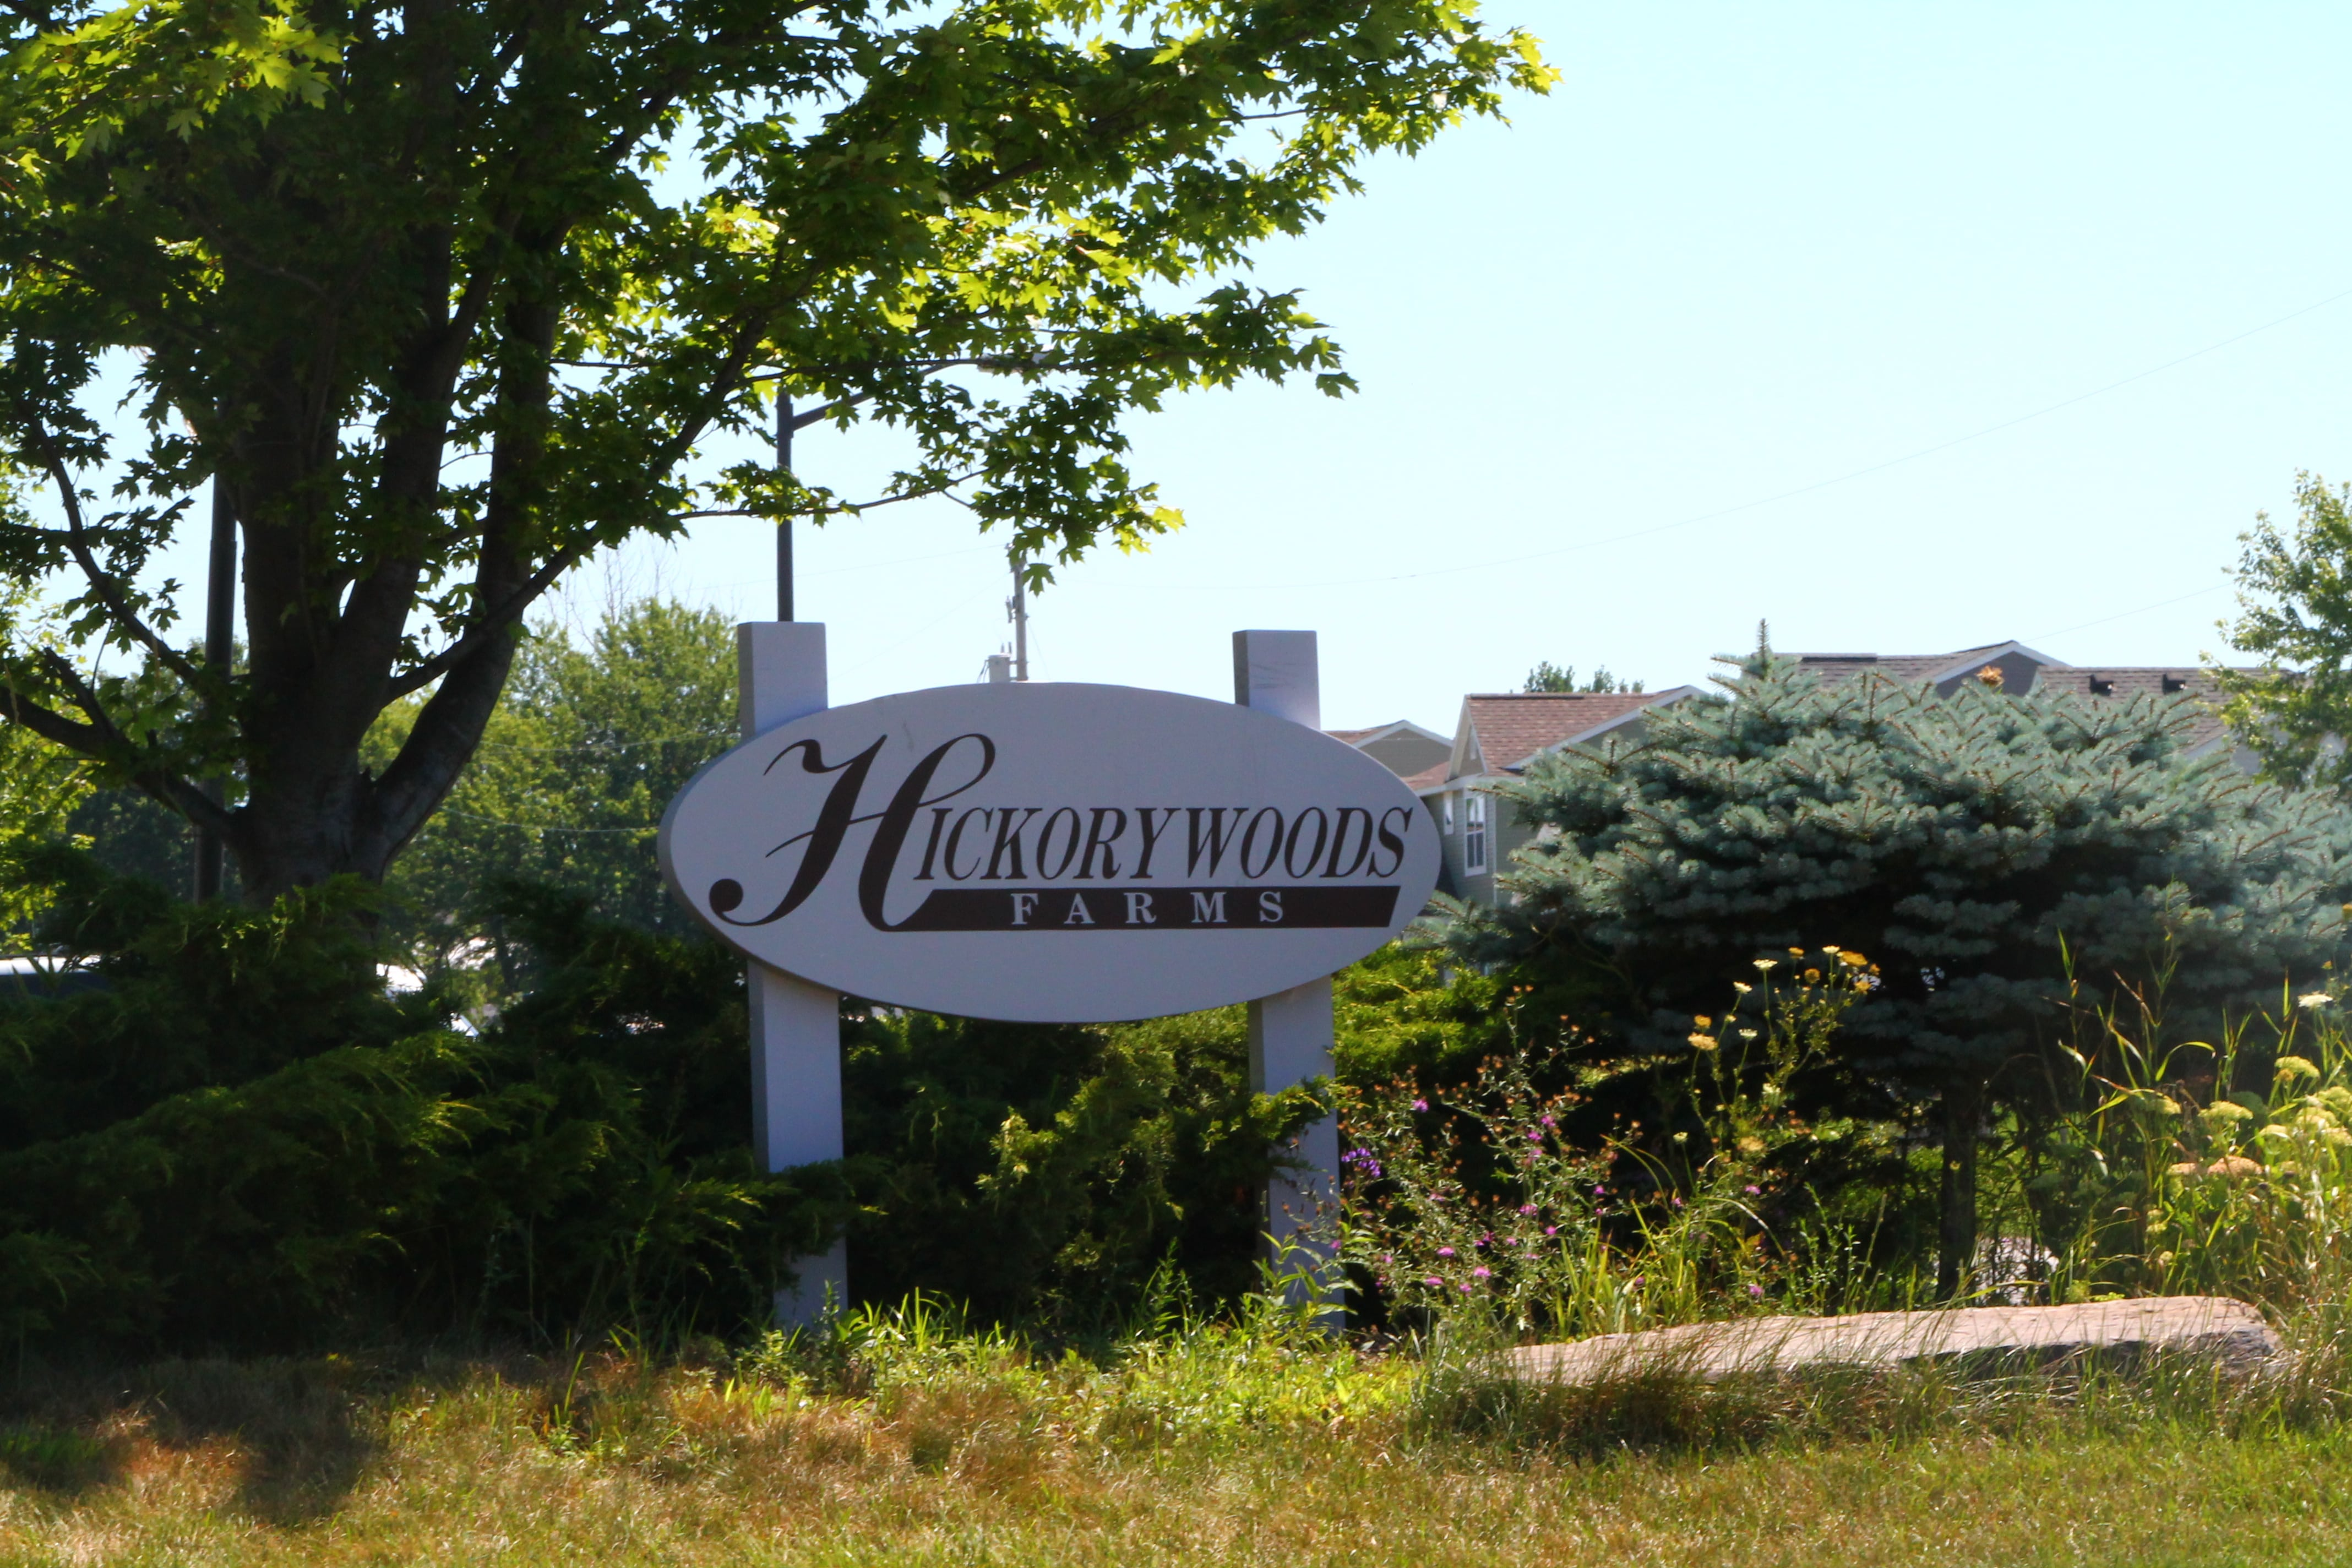 Entrance Sign of Hickory Woods Farms